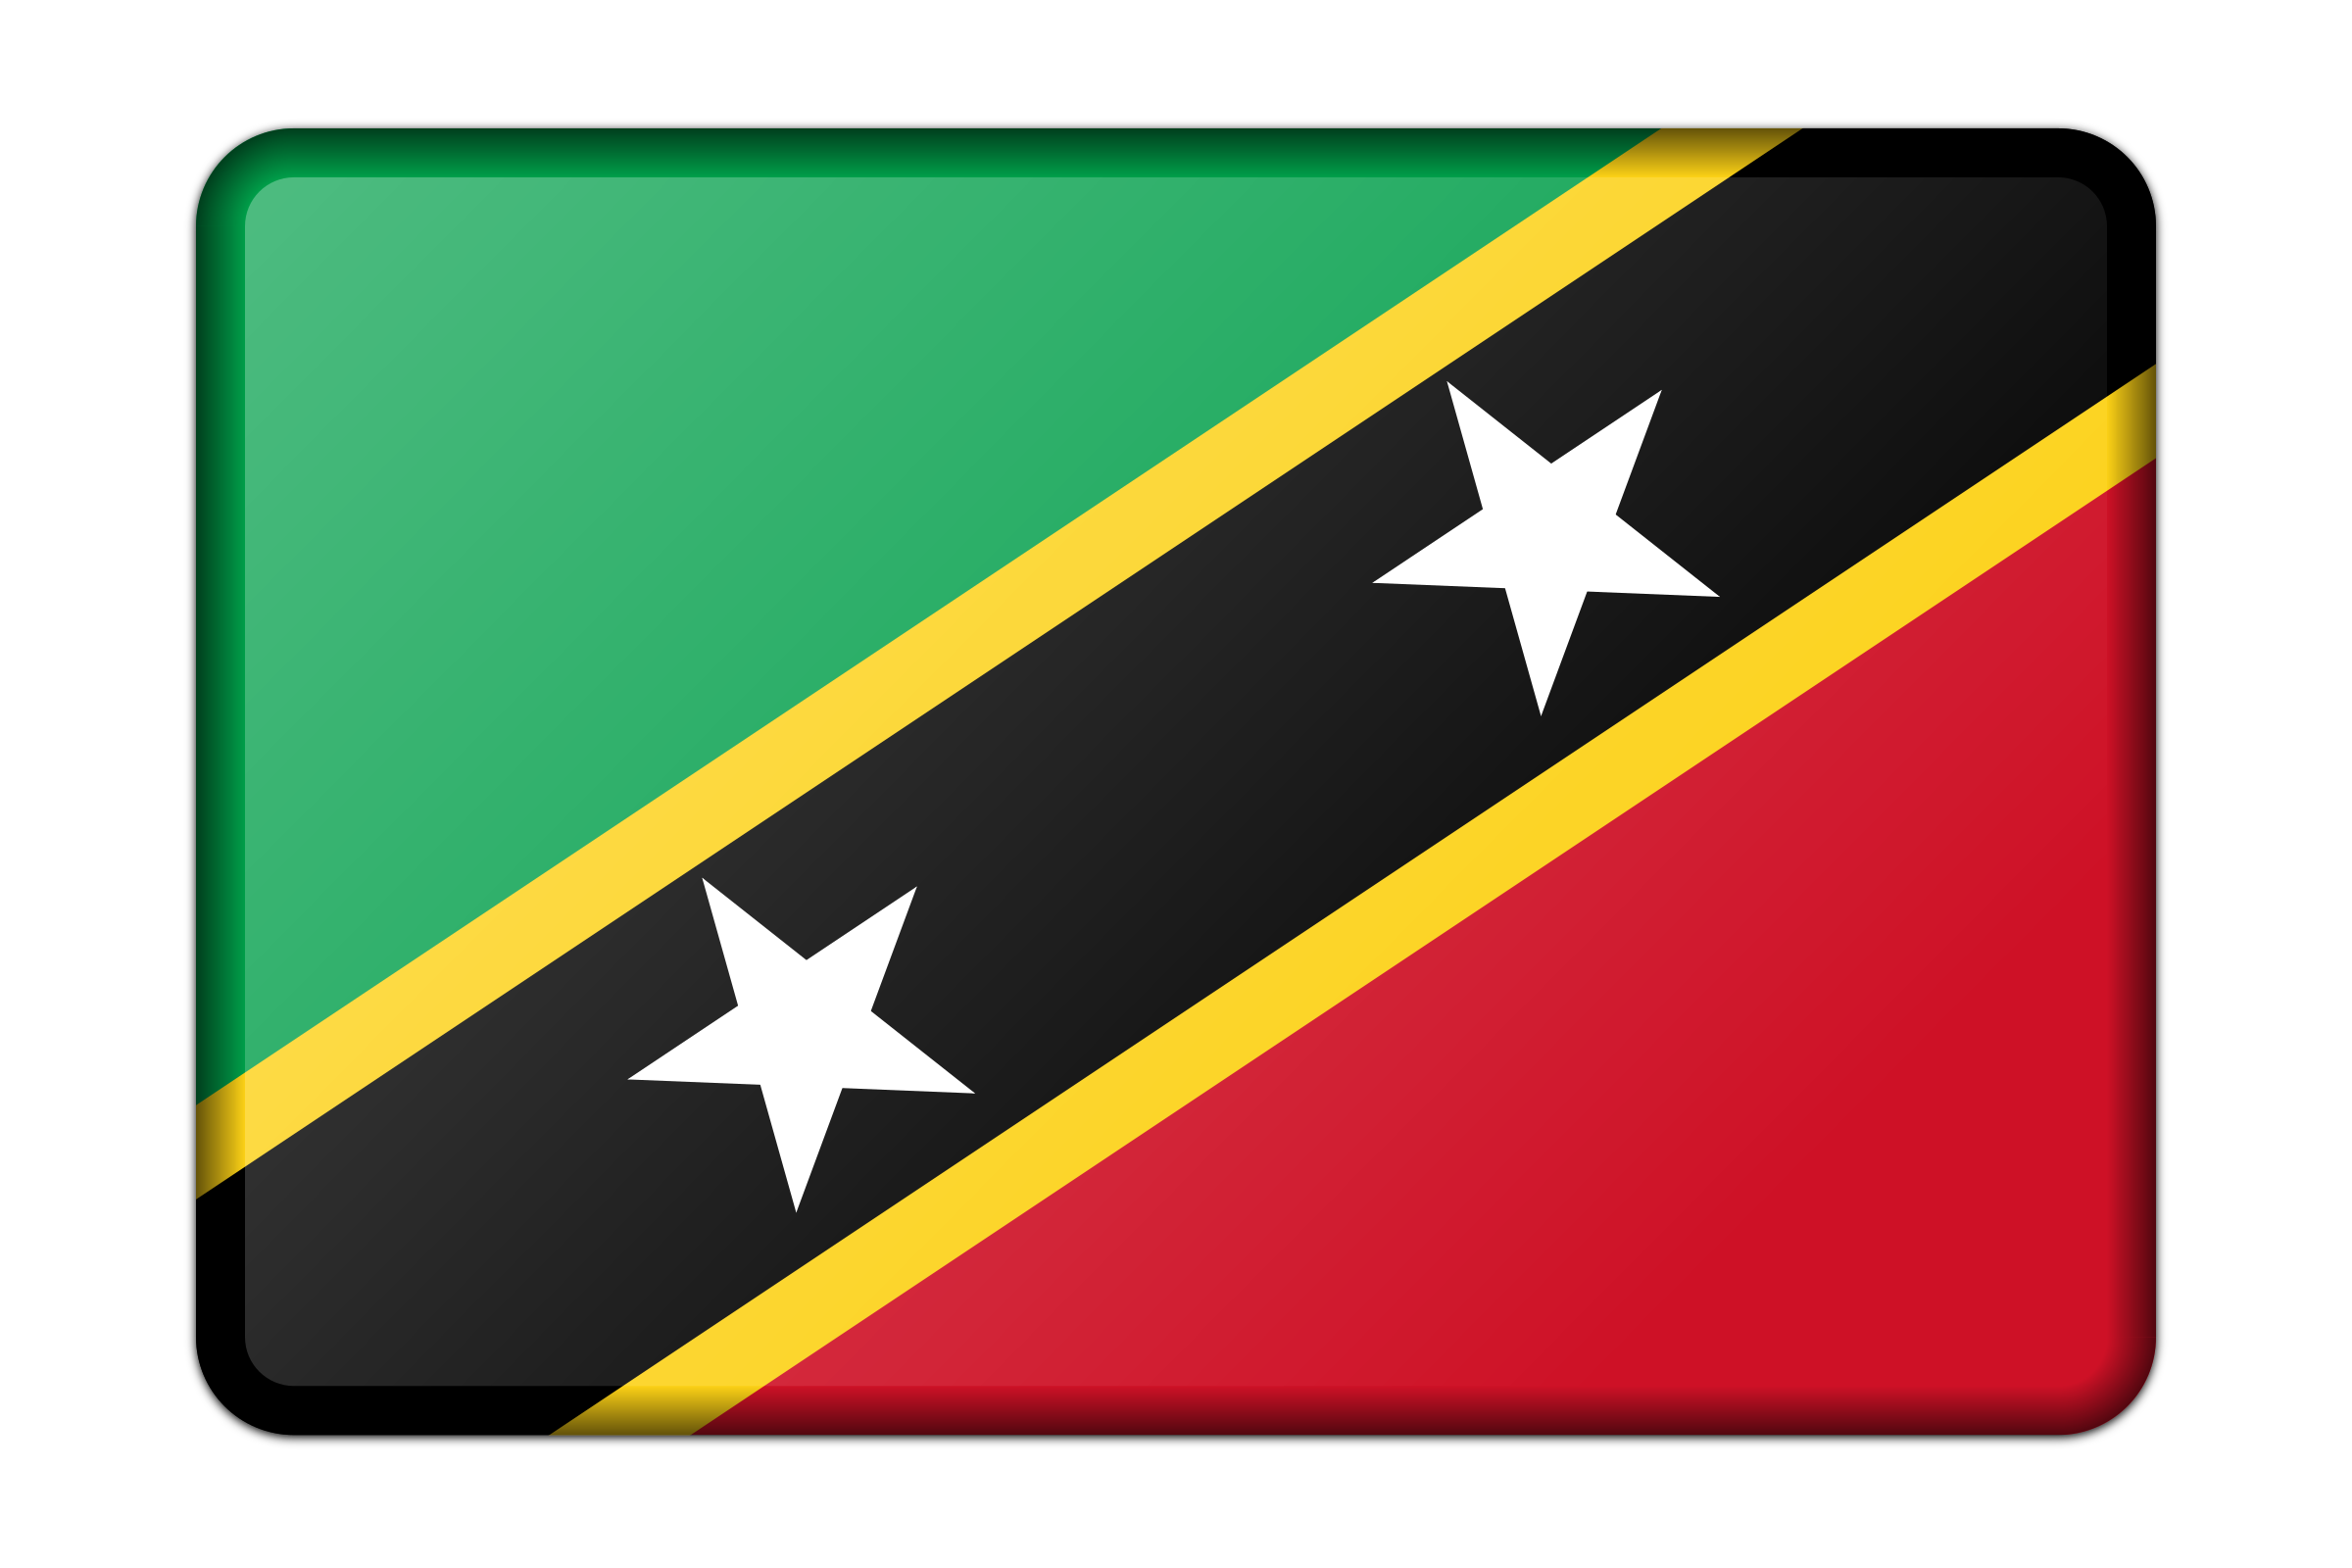 St Kitts and Nevis flag (bevelled) by Firkin